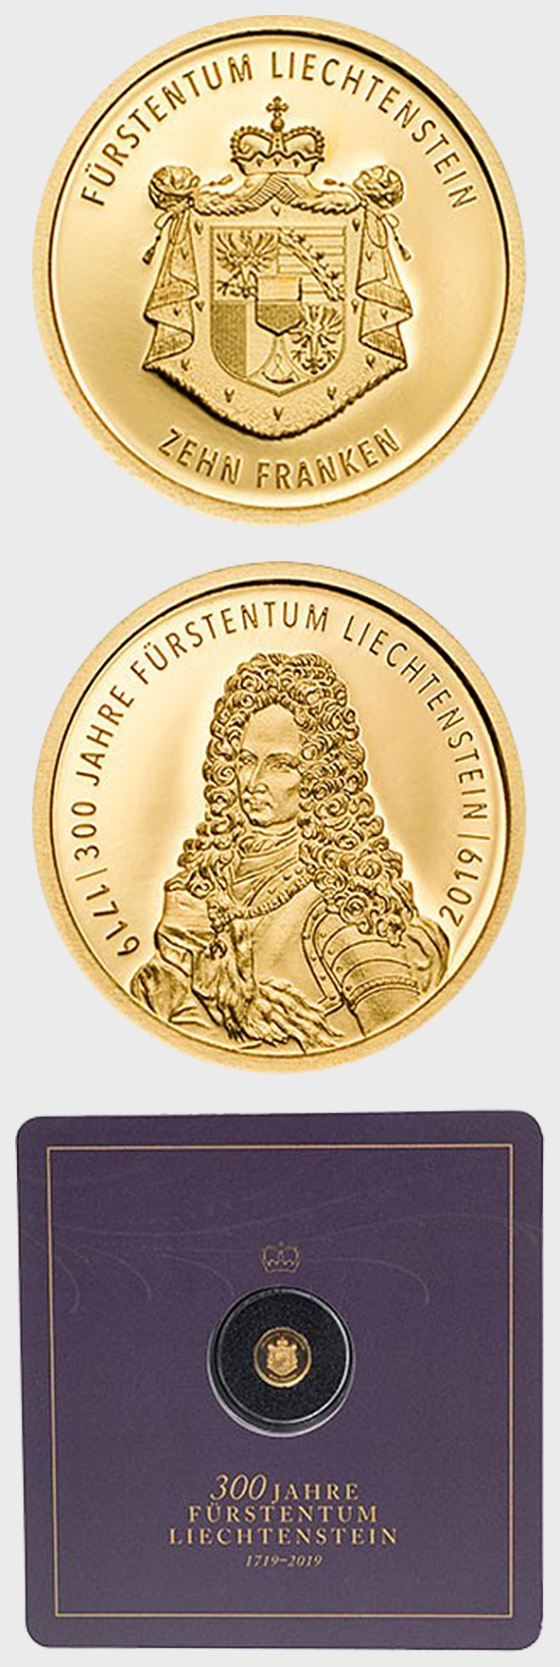 300 Years of Liechtenstein 2019 - CHF10 Gold Coin - Gold Coin